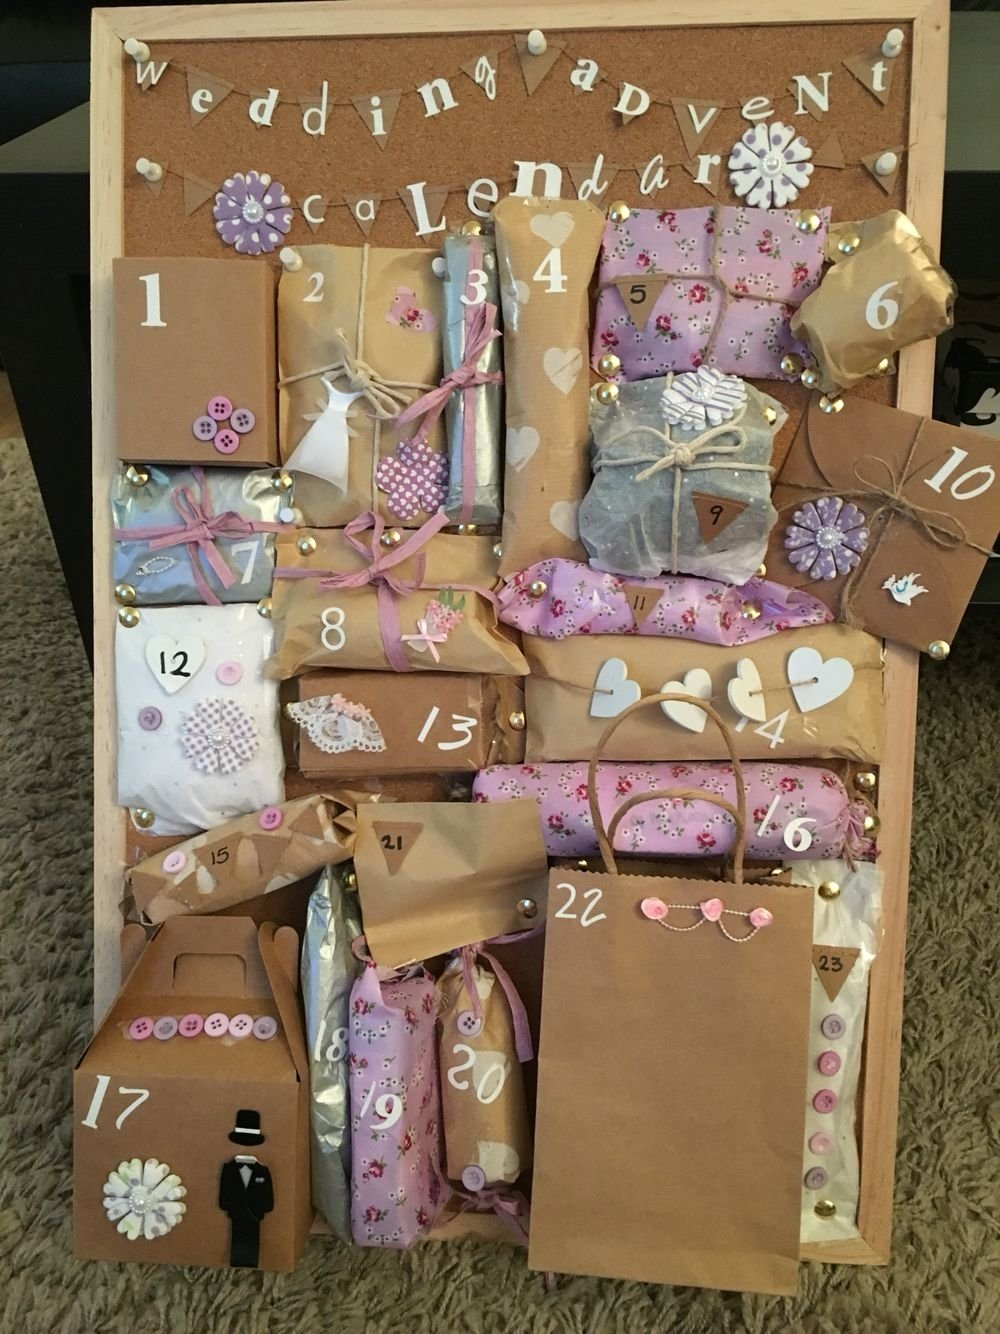 10 Fashionable Gift Ideas For My Best Friend made this wedding advent calendar for my best friend who is getting 1